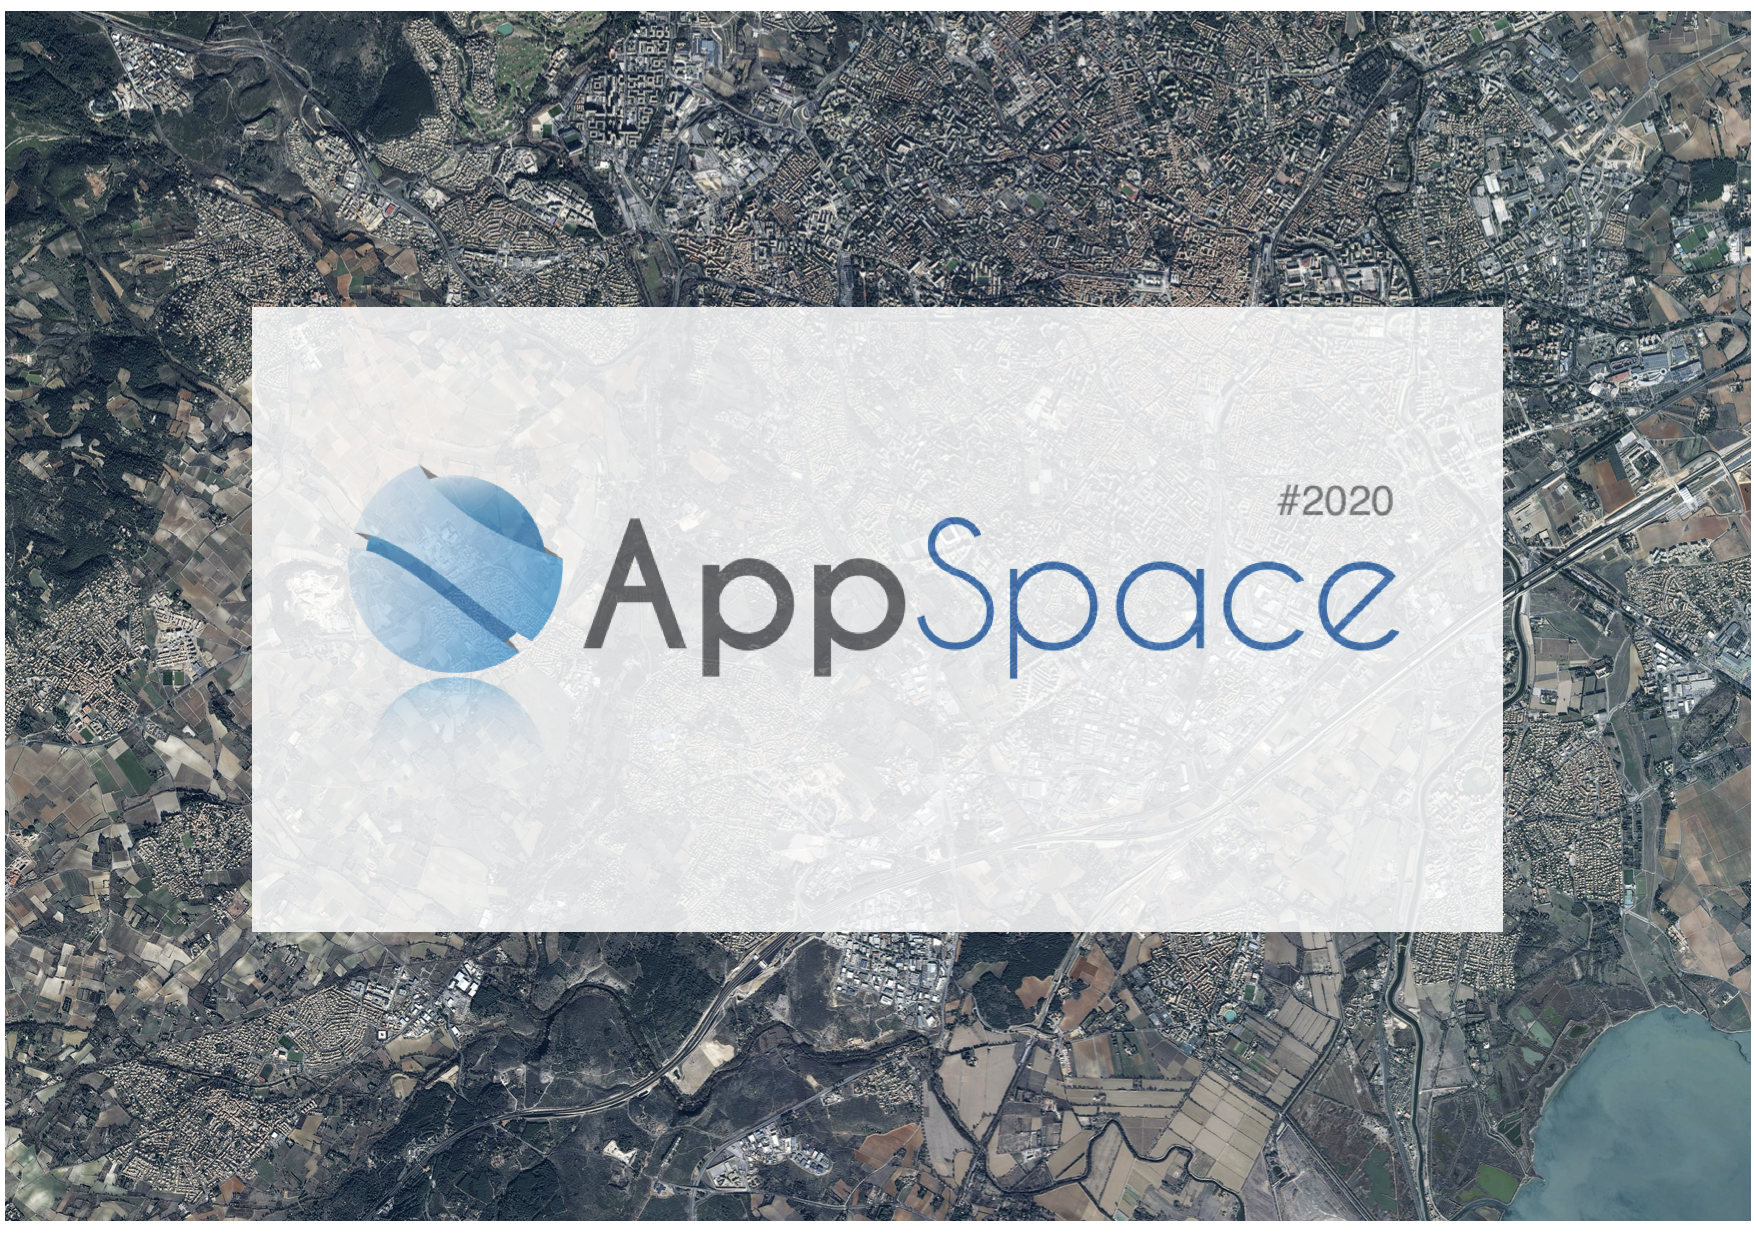 appspace2020